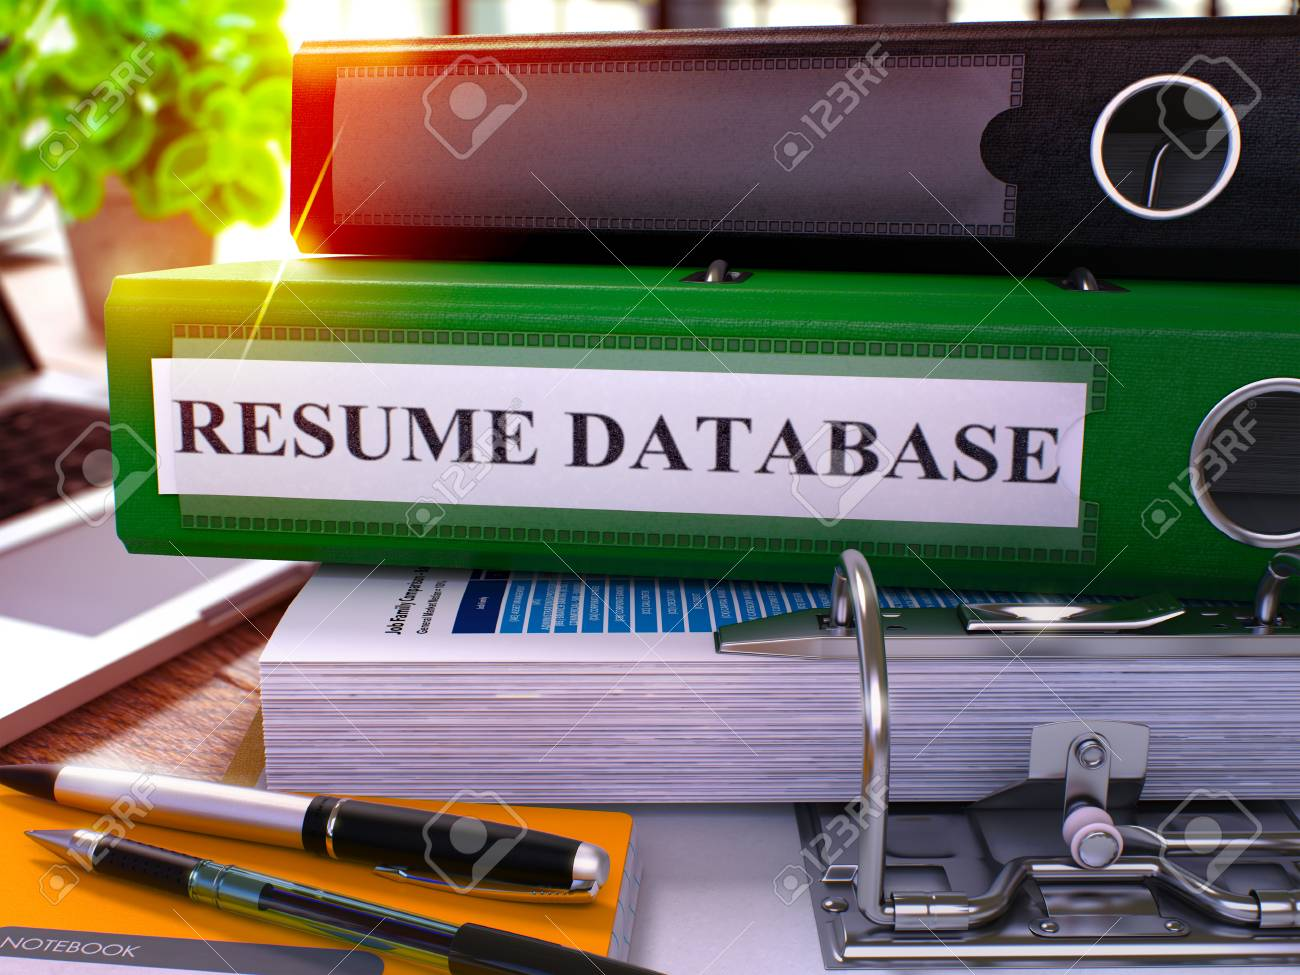 Resume Database Green Ring Binder On Office Desktop With Office